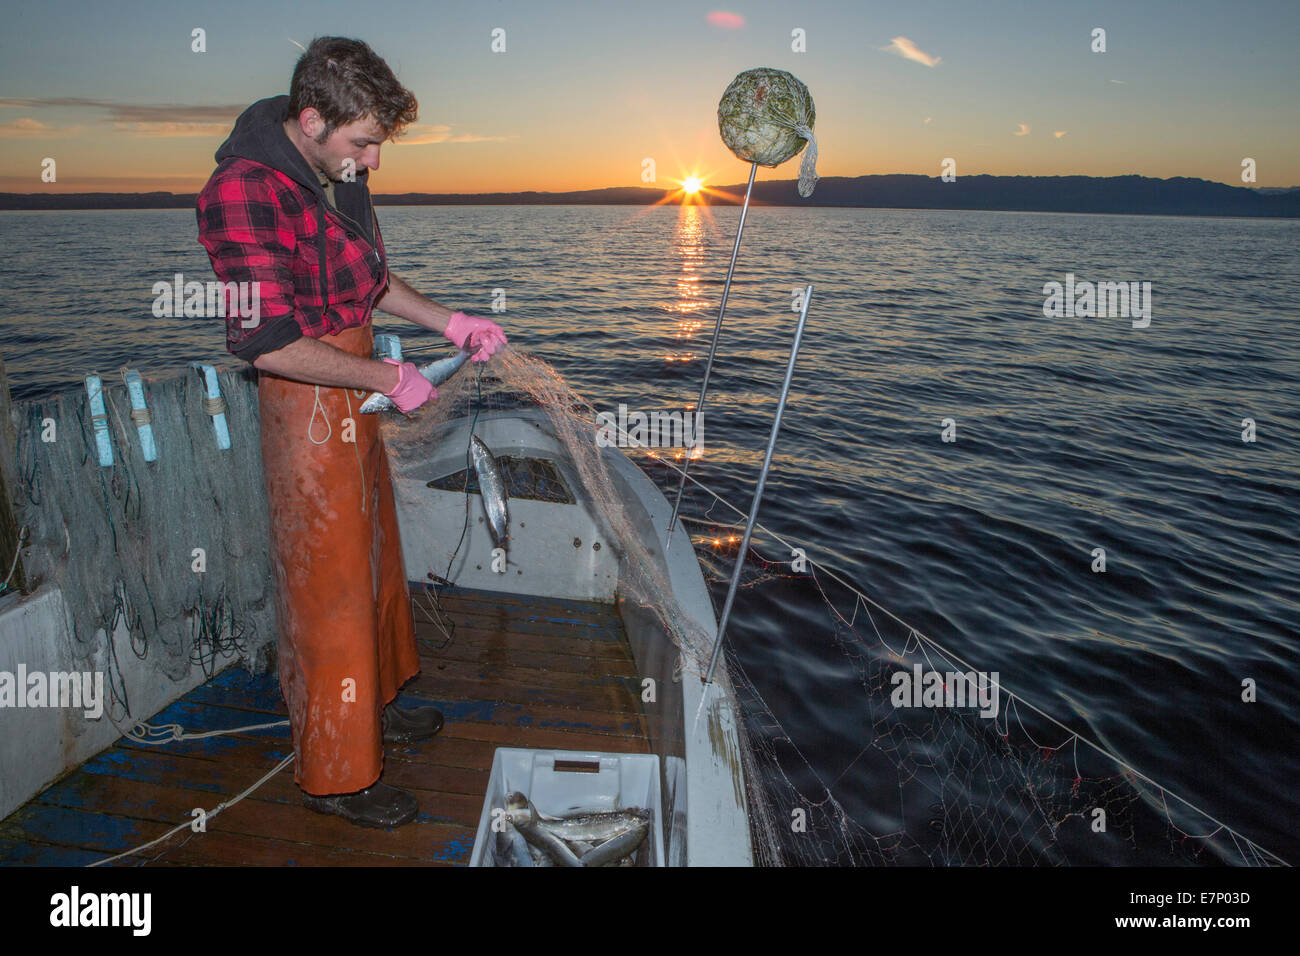 Lake Constance, fisherman, Lake Constance, spring, Claudio Timo Görtz, work, job, occupation, profession, occupations, - Stock Image